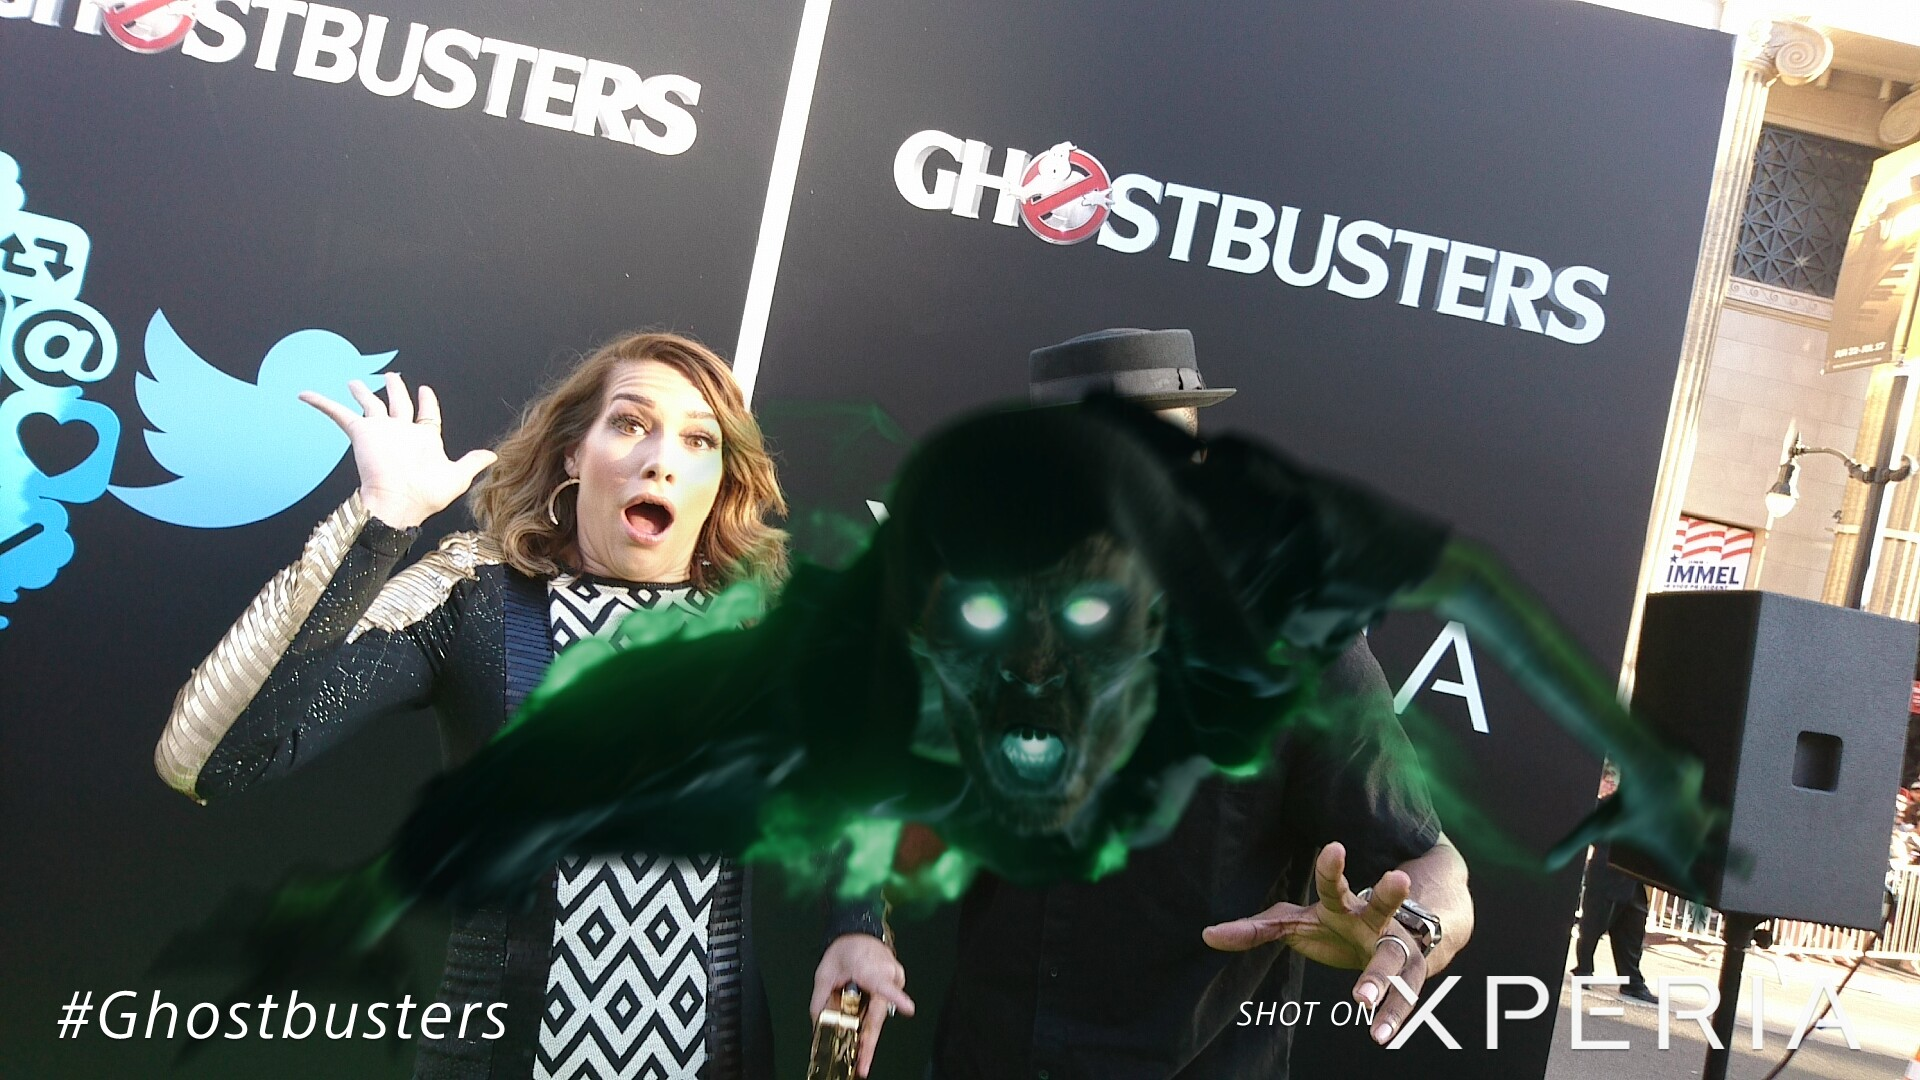 Ghostbusters_Red_Carpet_2016_07_09_18_54_32.015.jpg